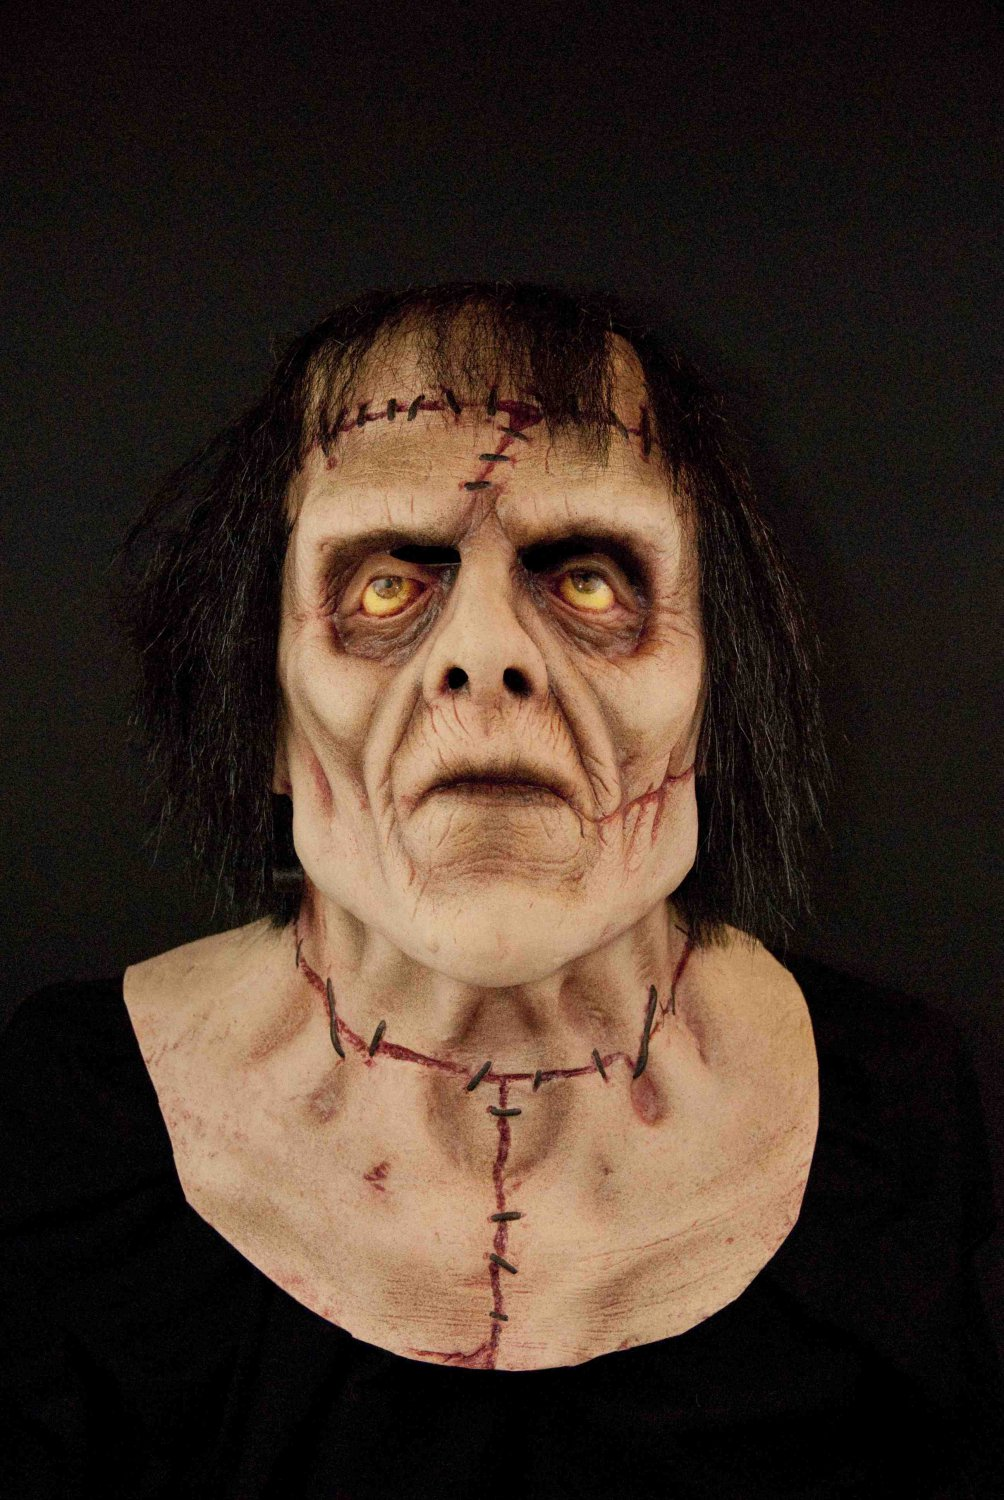 Frankenstein The Monster Reanimated Corpse Scary Halloween Mask